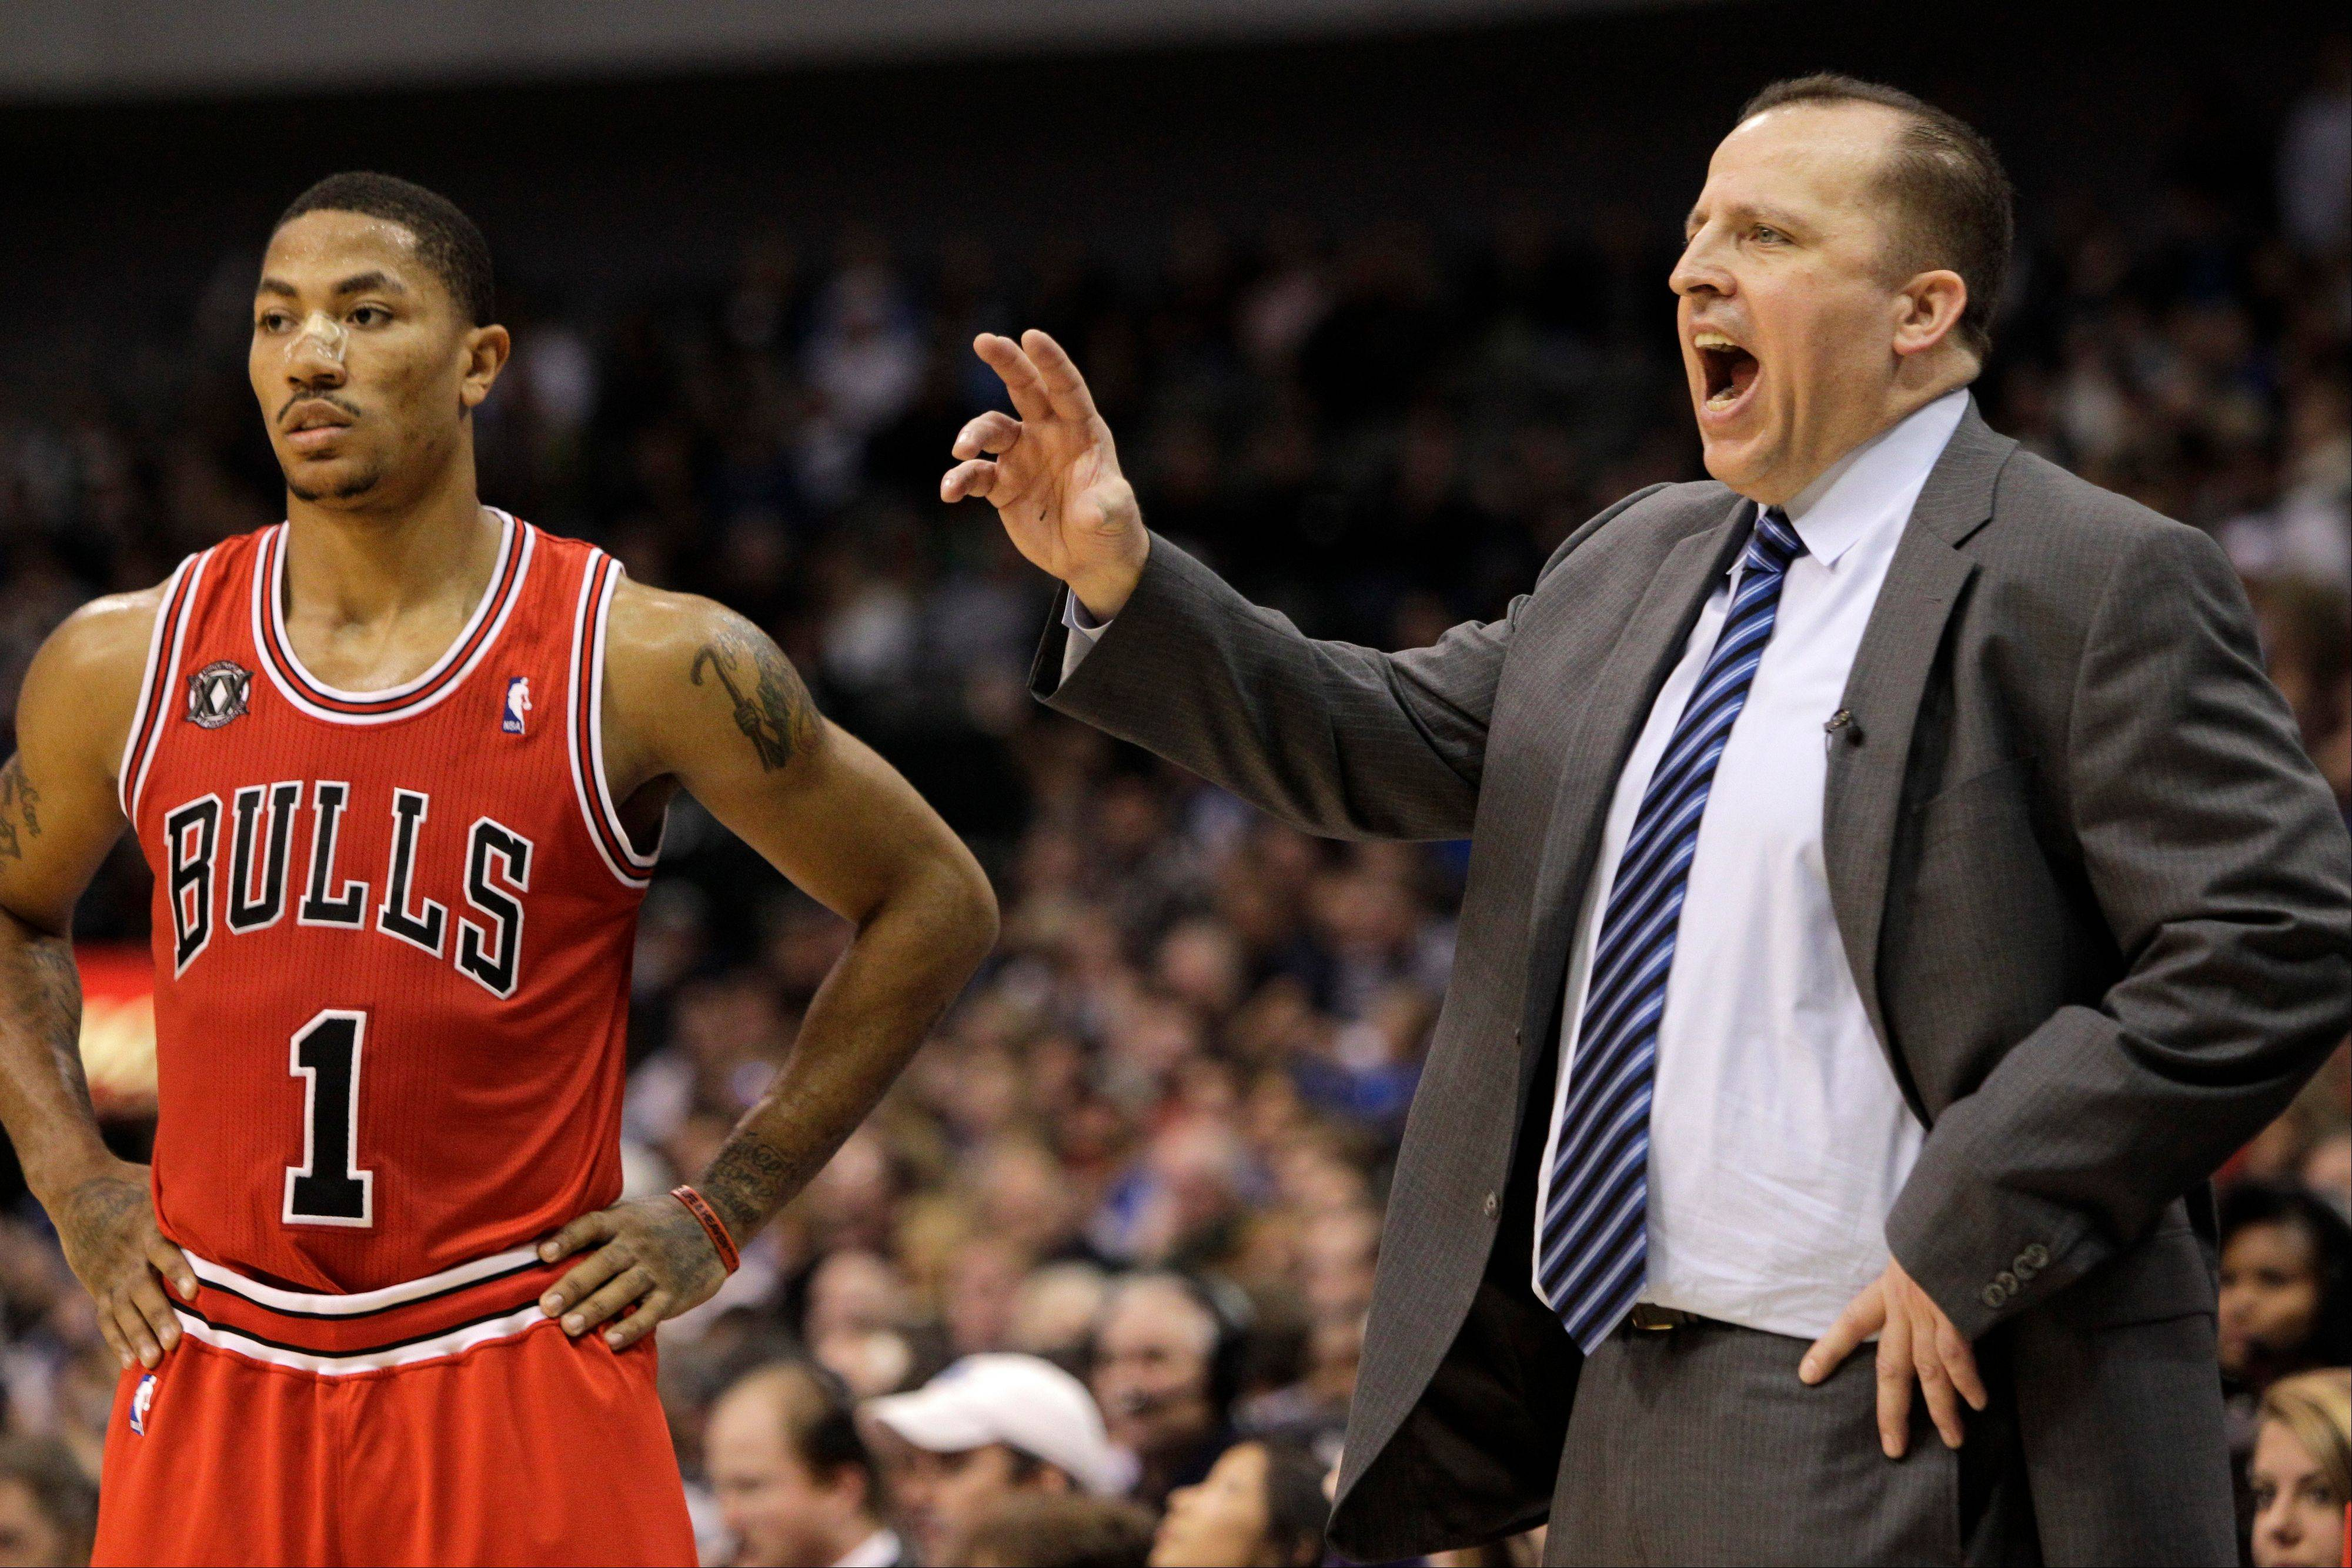 When coach Tom Thibodeau and Derrick Rose are reunited on the court this season, the Bulls' dynamic will change, according to Mike McGraw.